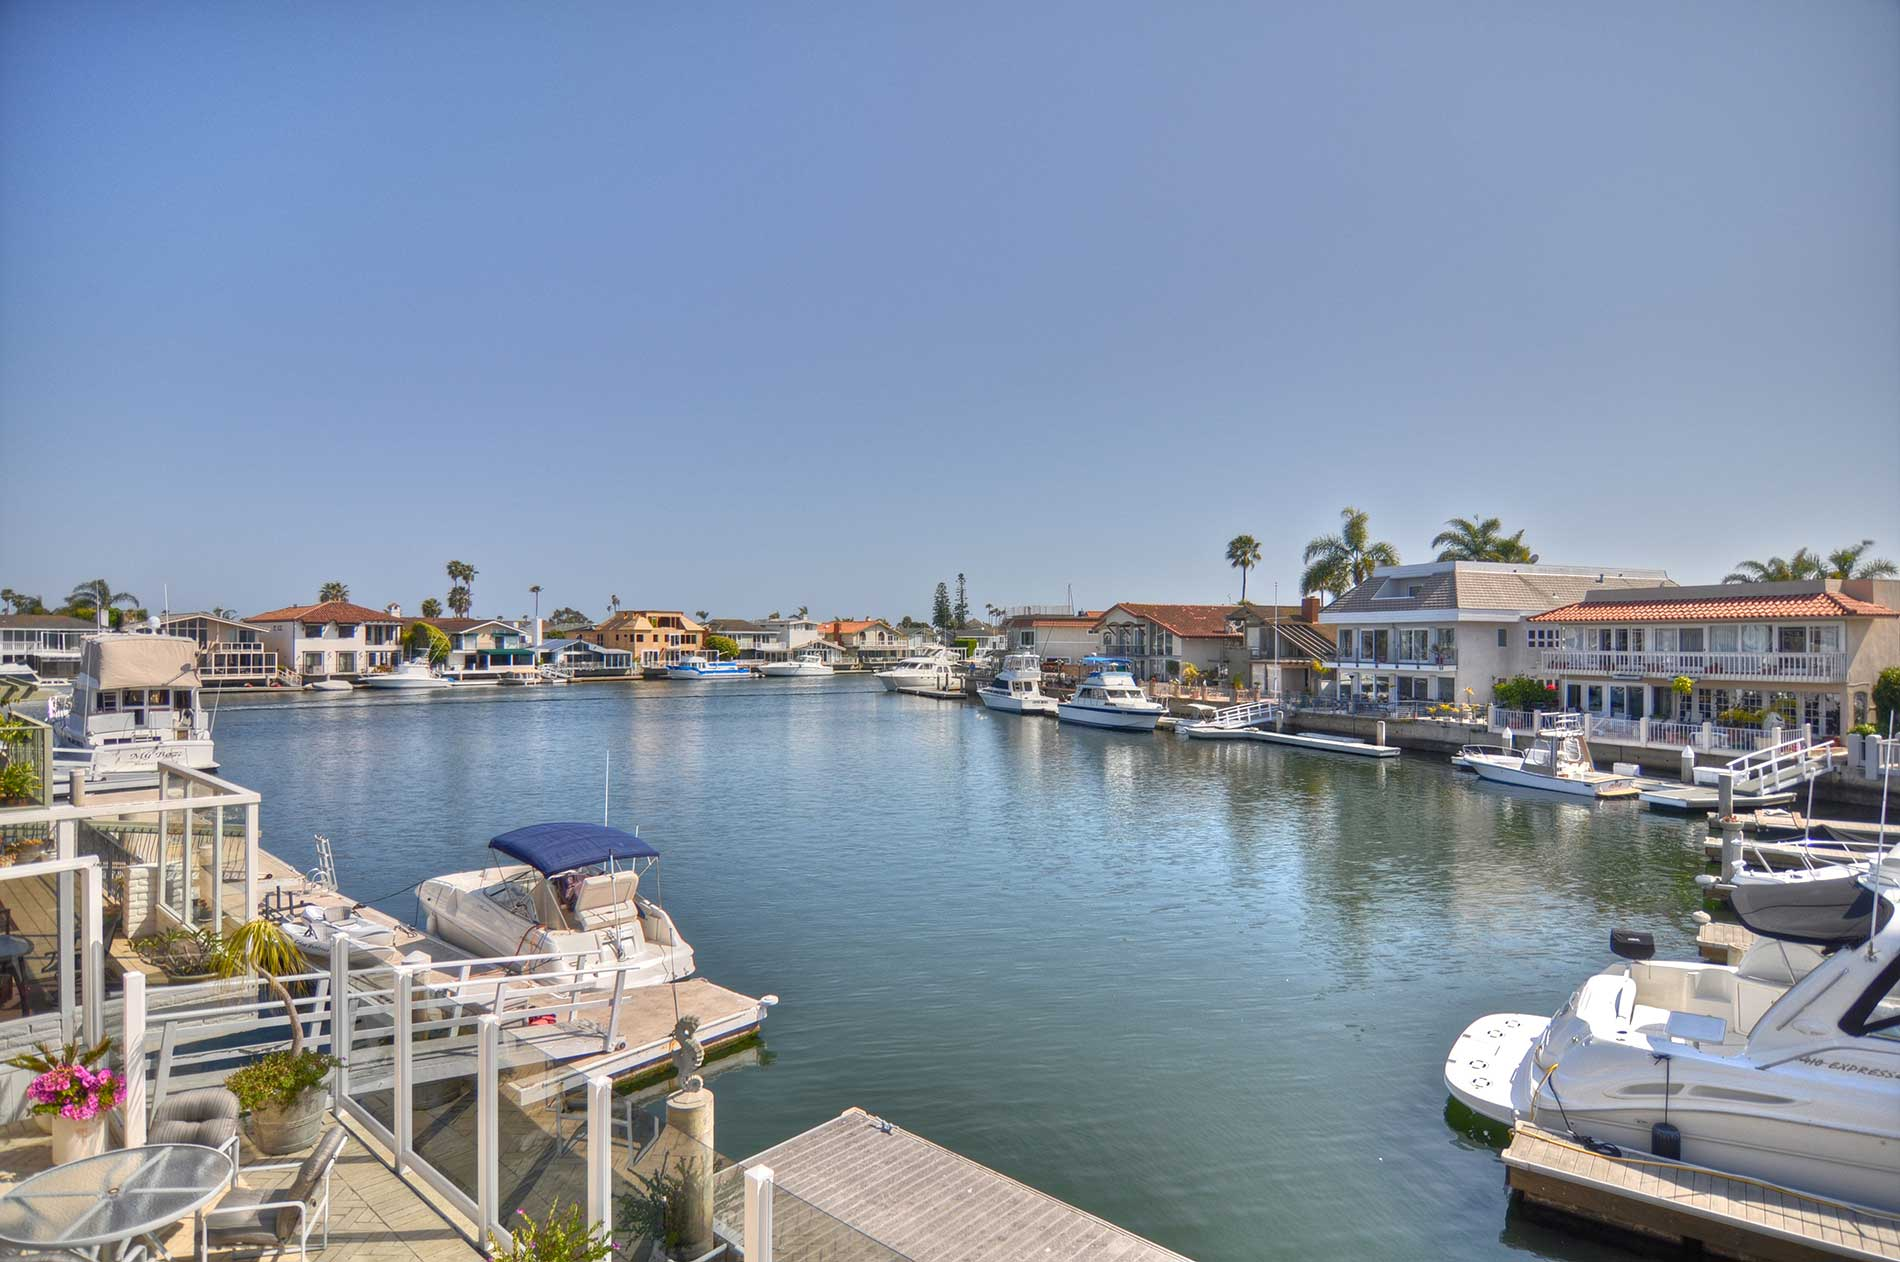 Lido Island Newport Beach Waterfront Homes for Sale